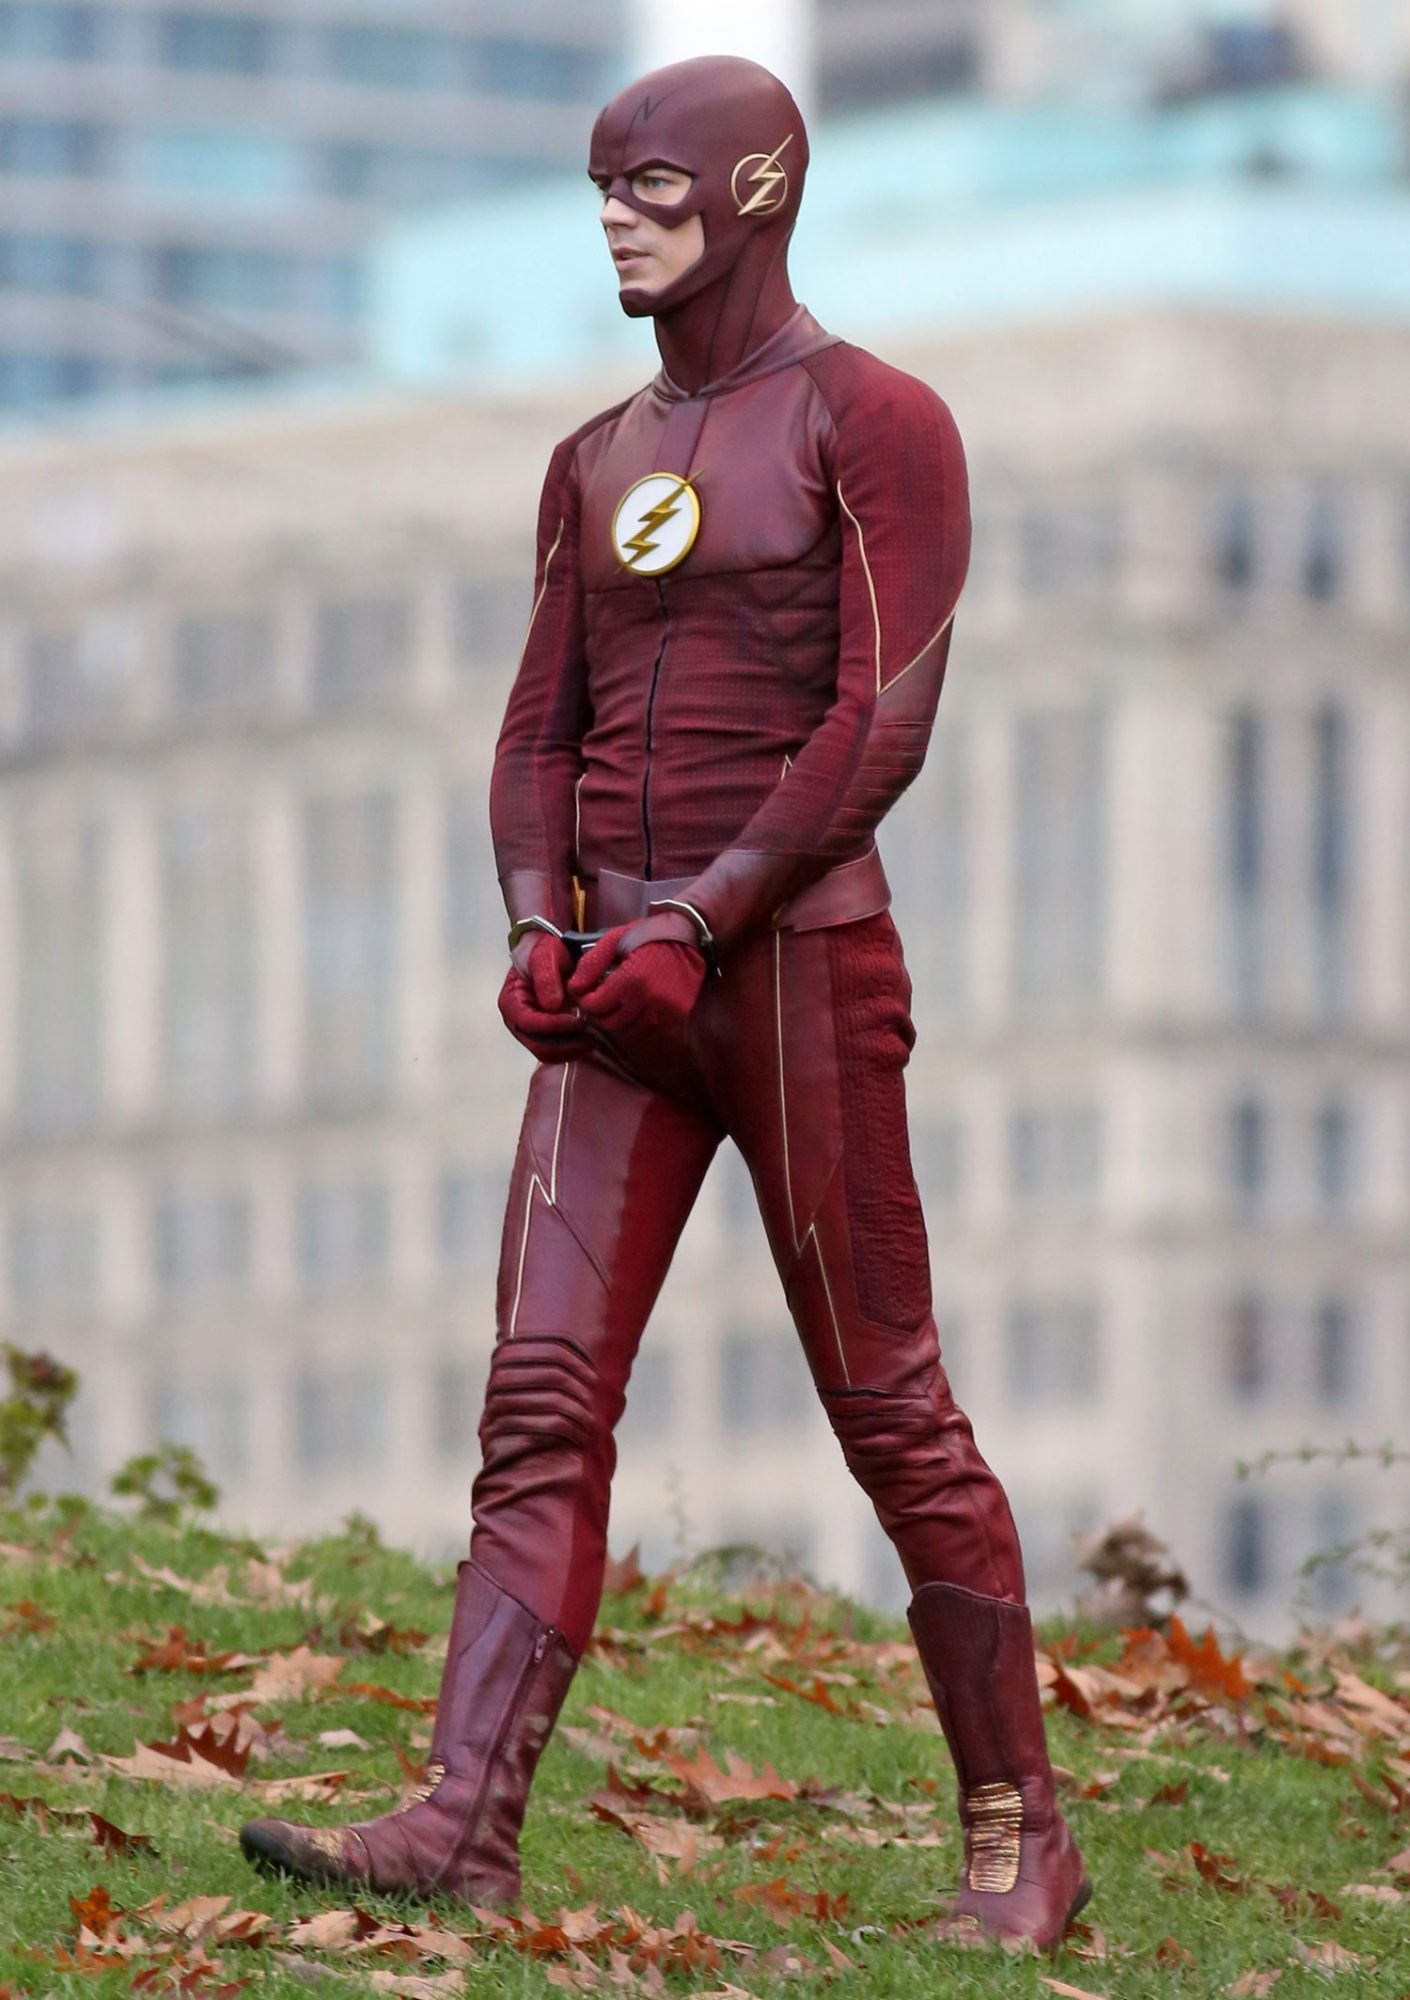 *EXCLUSIVE* Grant Gustin is handcuffed as he shoots scenes for 'The Flash'